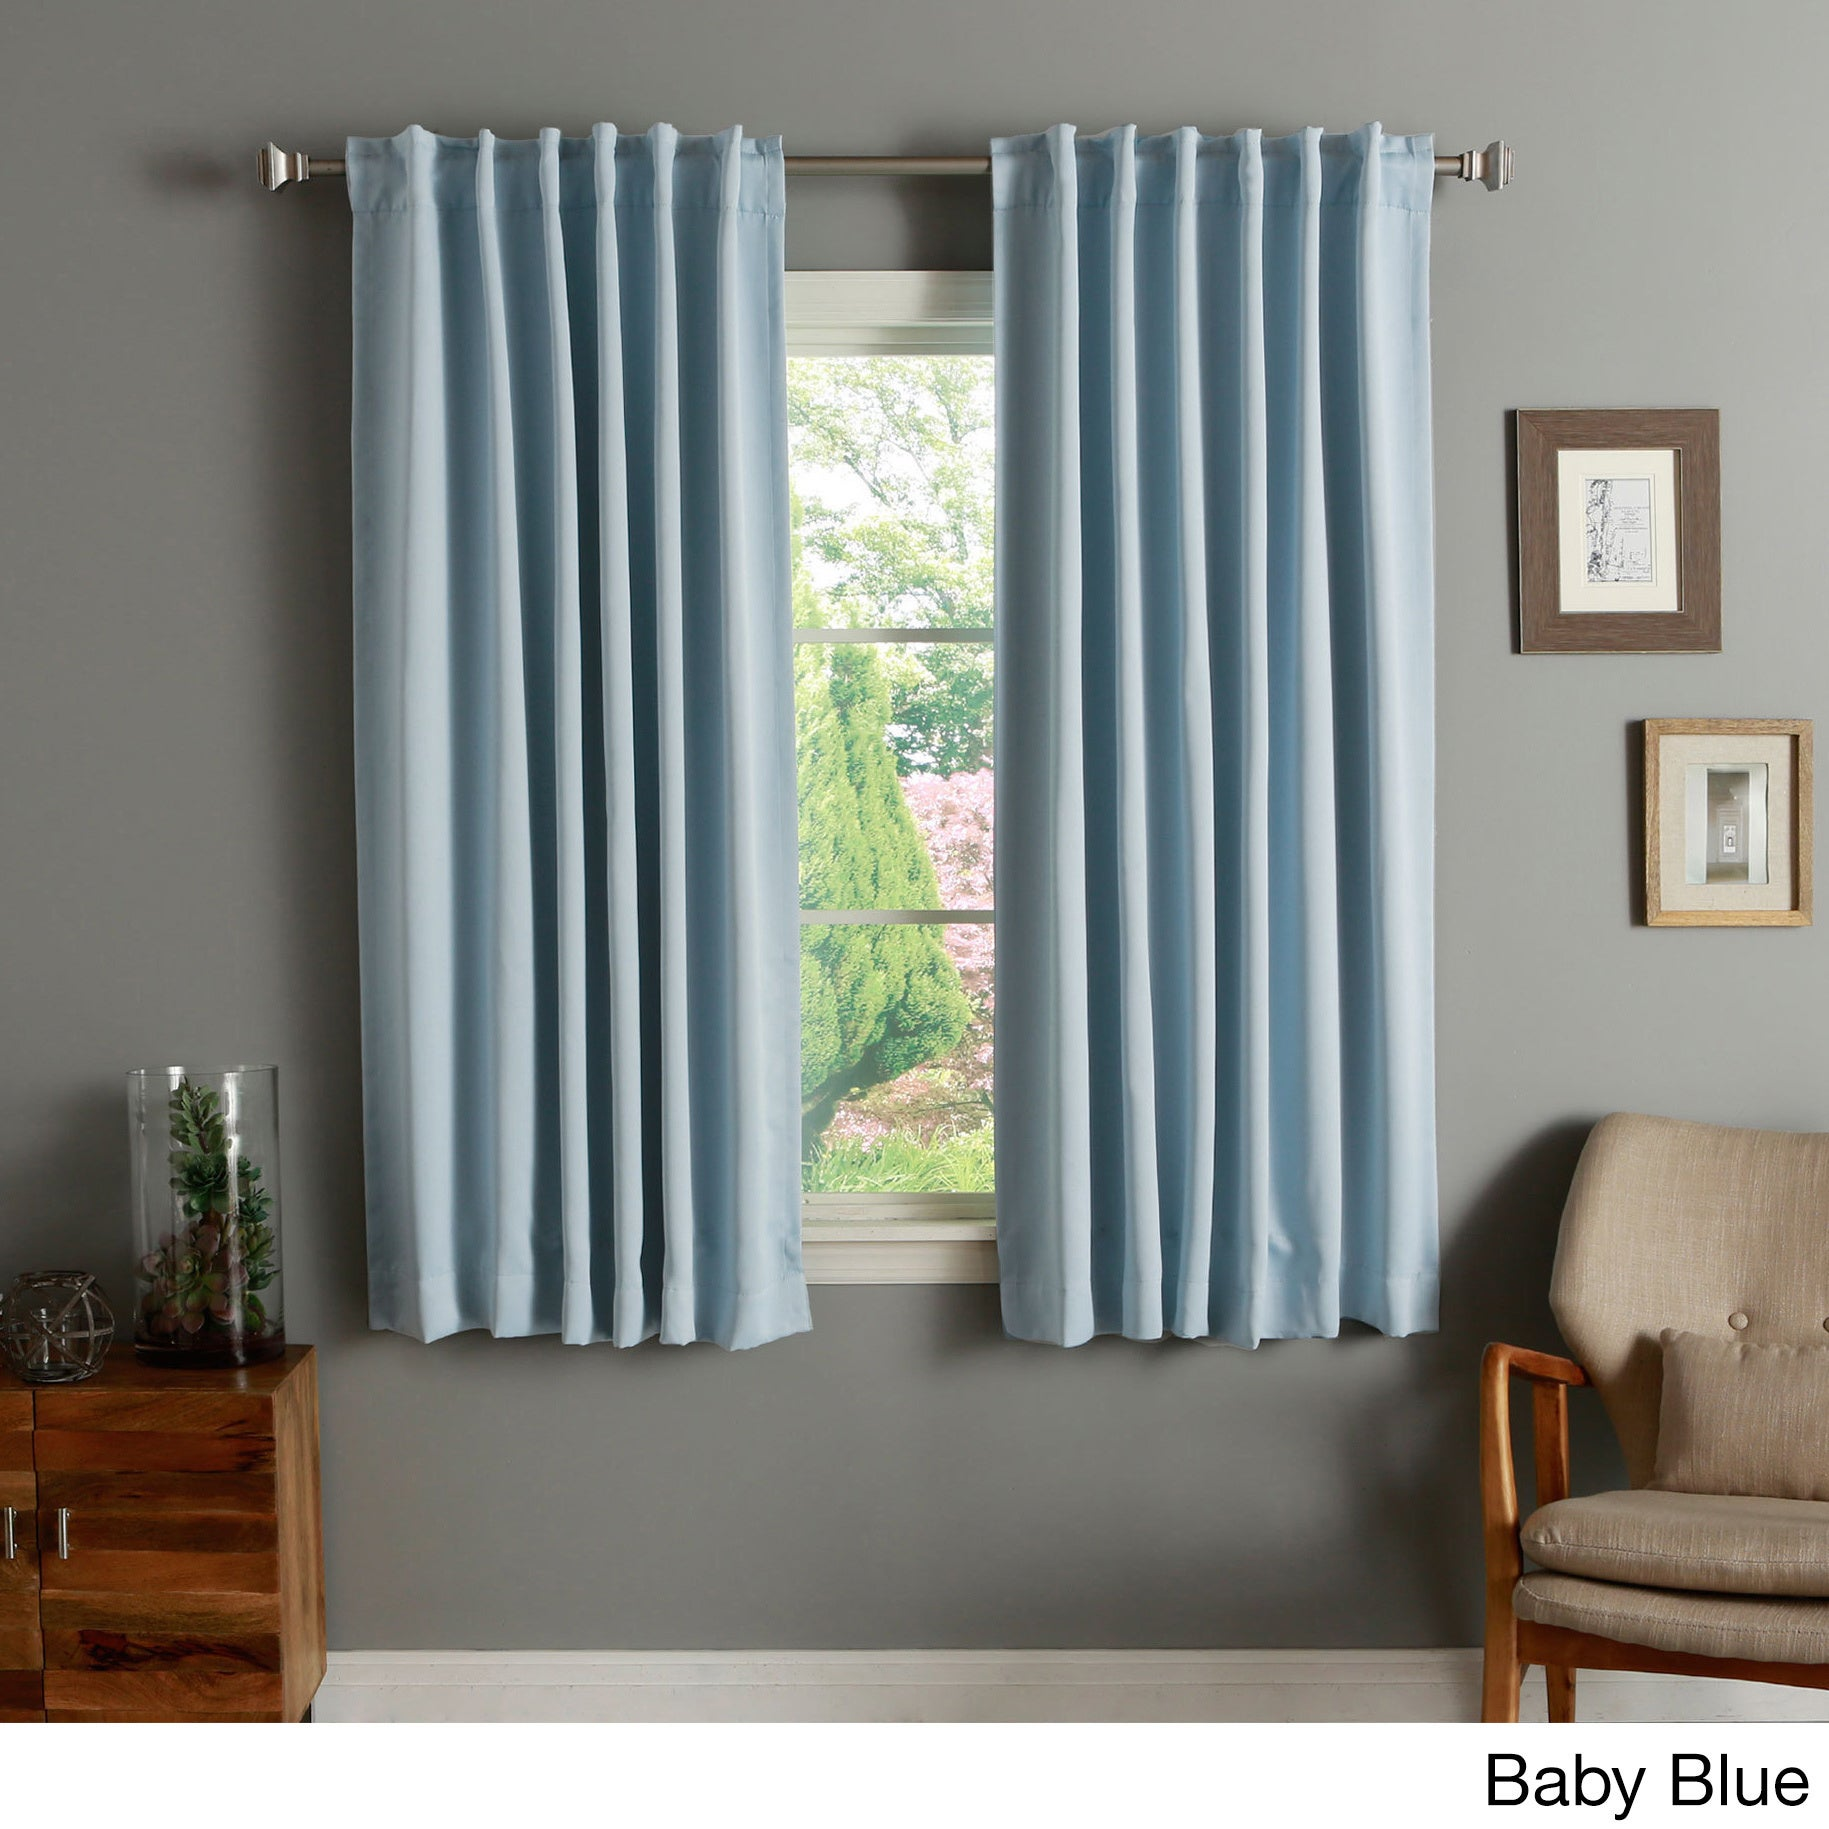 Aurora Home Solid Insulated Thermal 63 Inch Blackout Curtain Panel Pair On Free Shipping Today 2946006